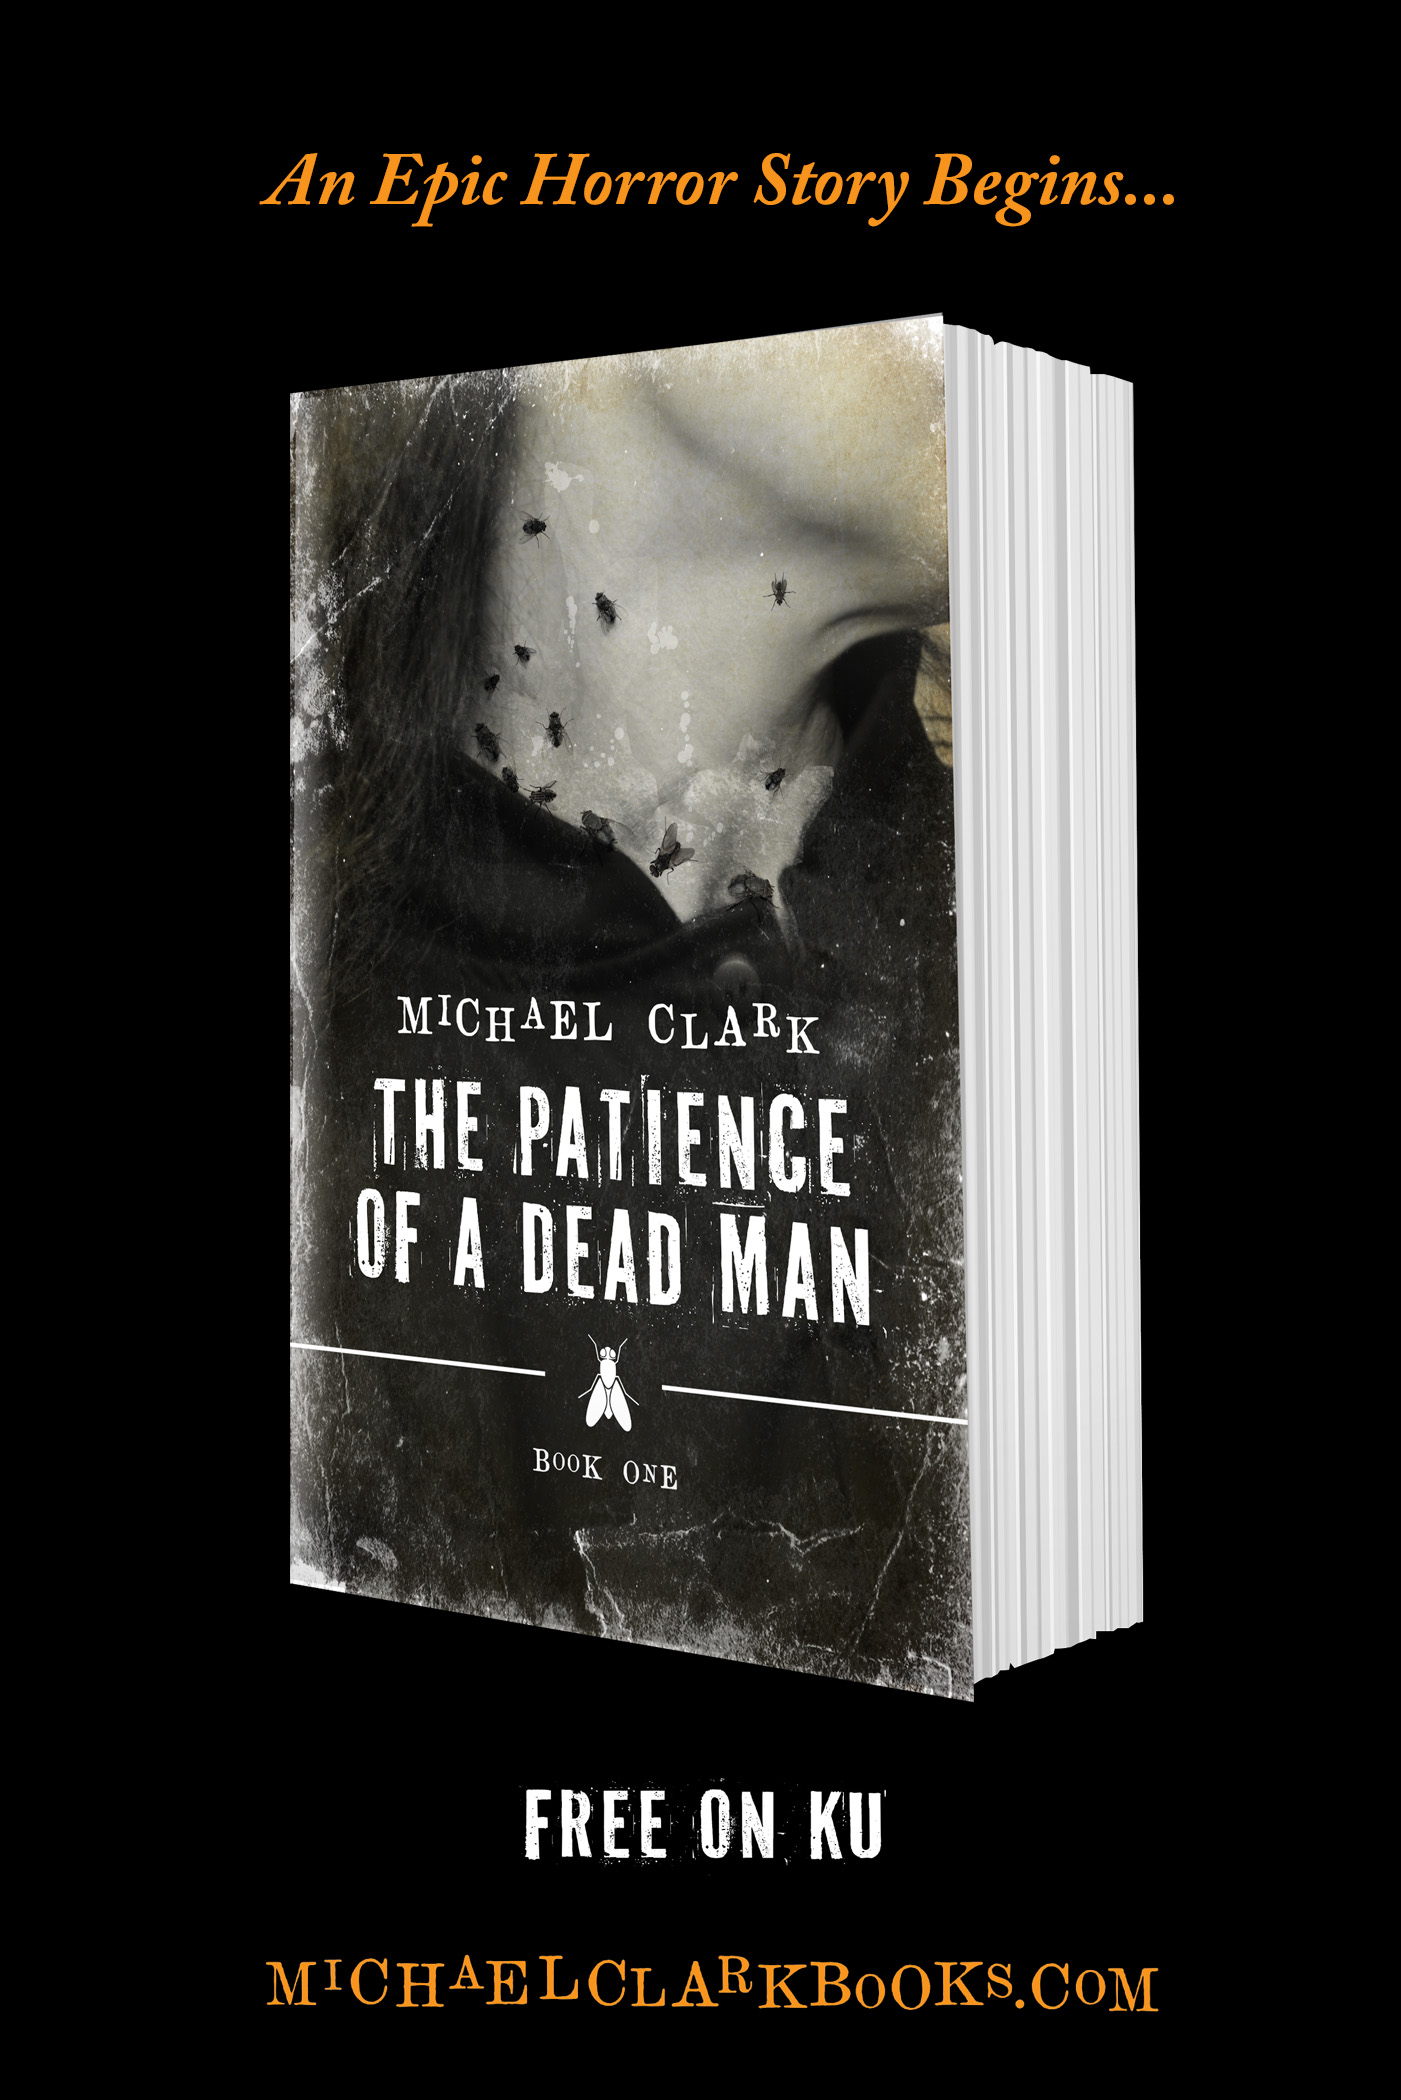 The Patience of a Dead Man